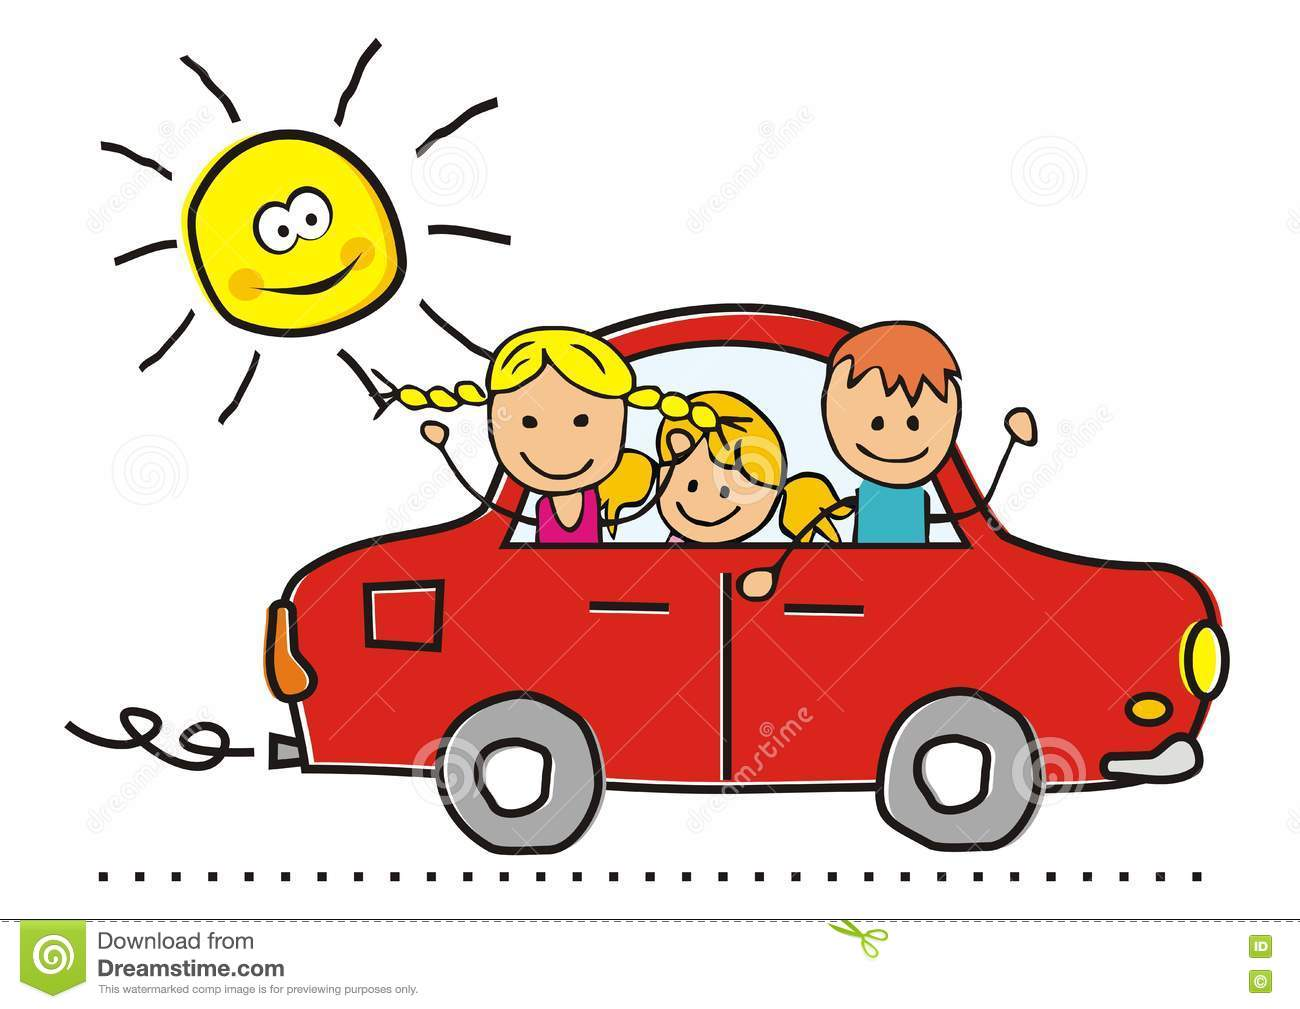 Kids in cars clipart royalty free download Kids In Car Clipart royalty free download